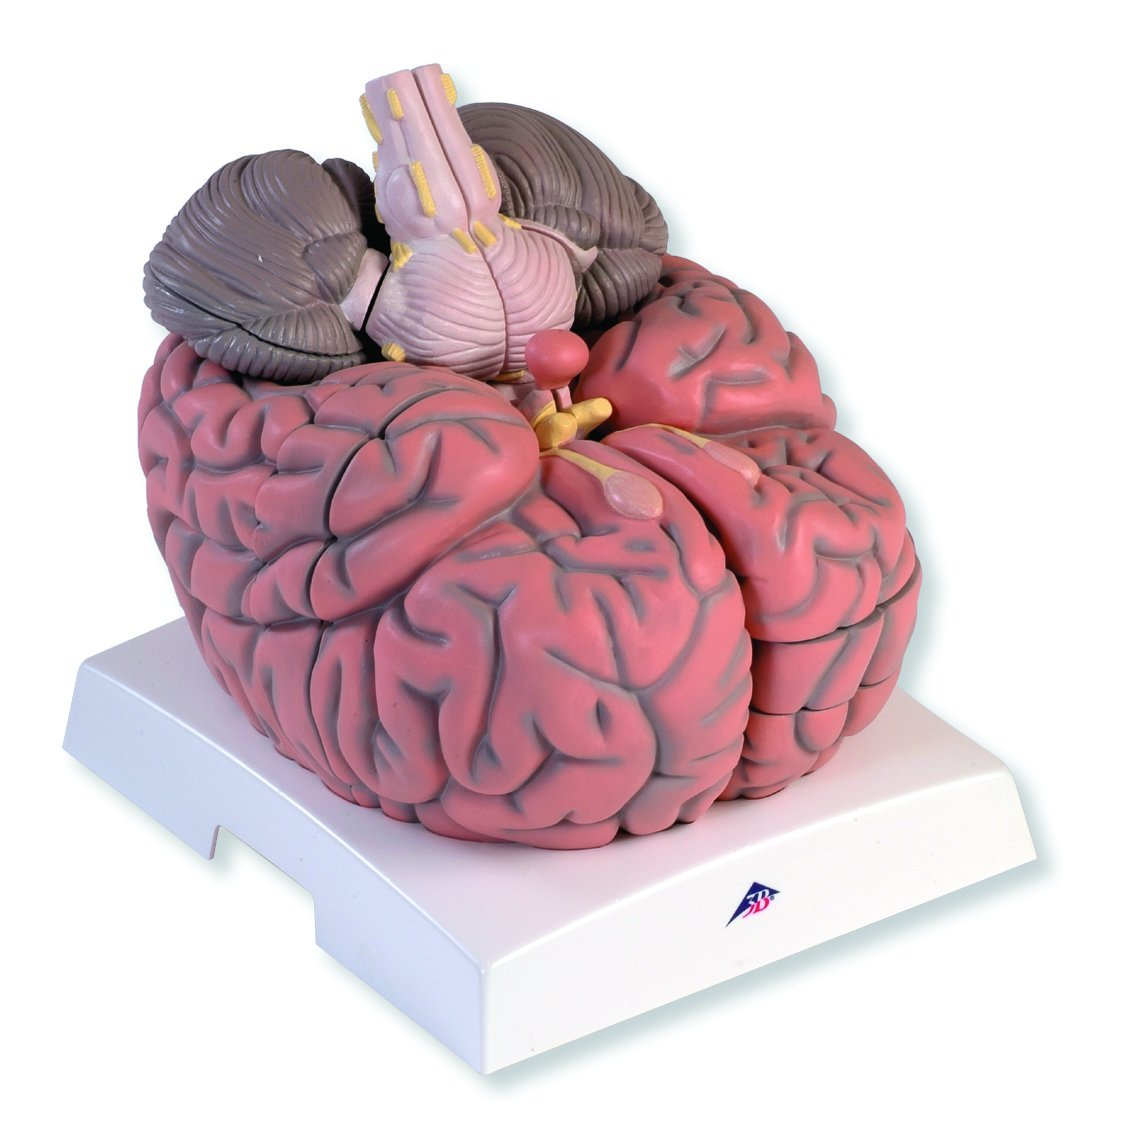 3b Scientific Vh409 14 Part Giant Brain Model 25 Times Full Size